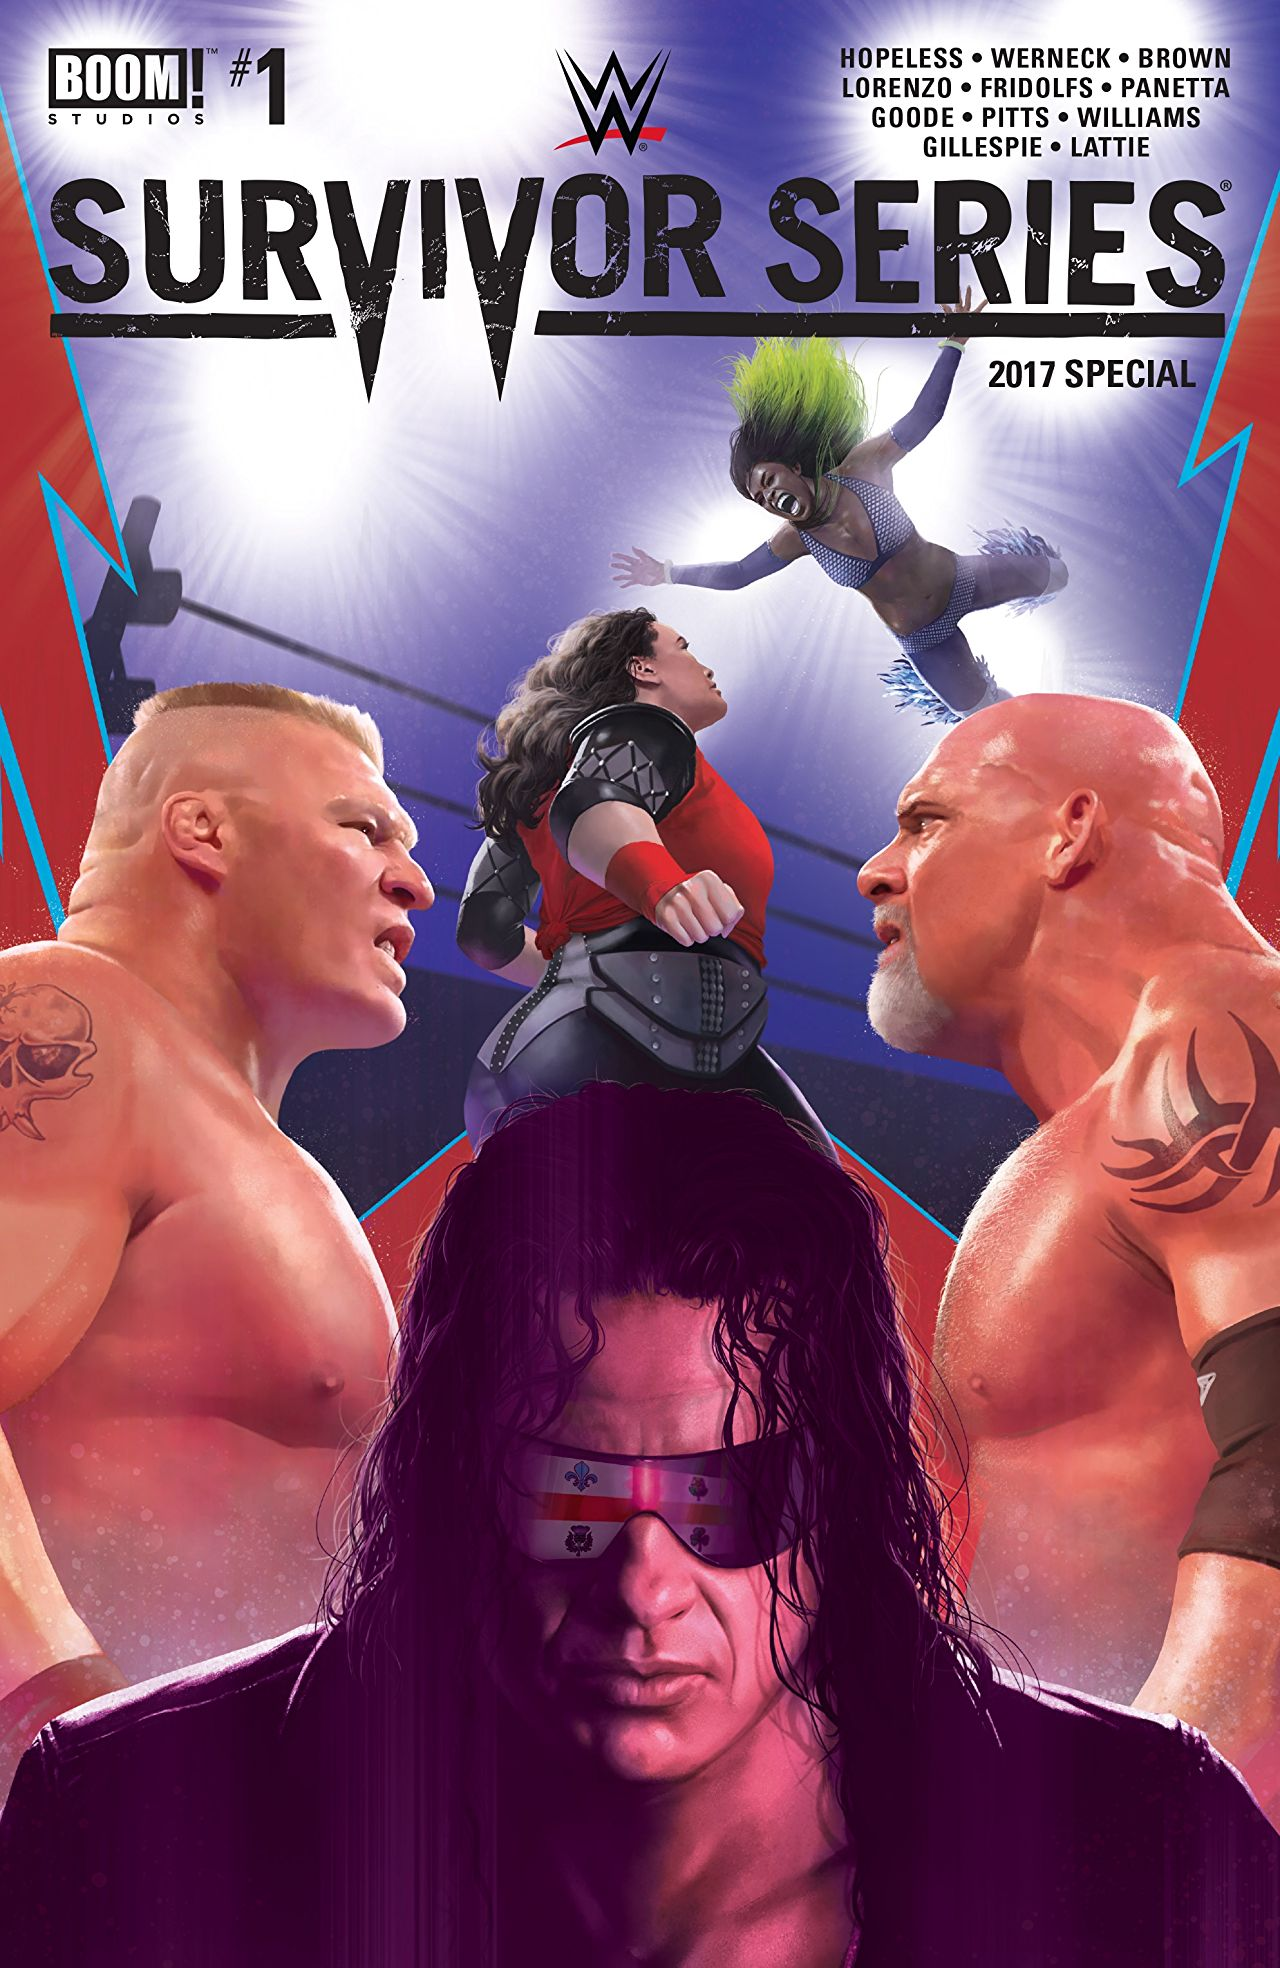 Wwe Survivor Series 2017 Special Multiversity Comics